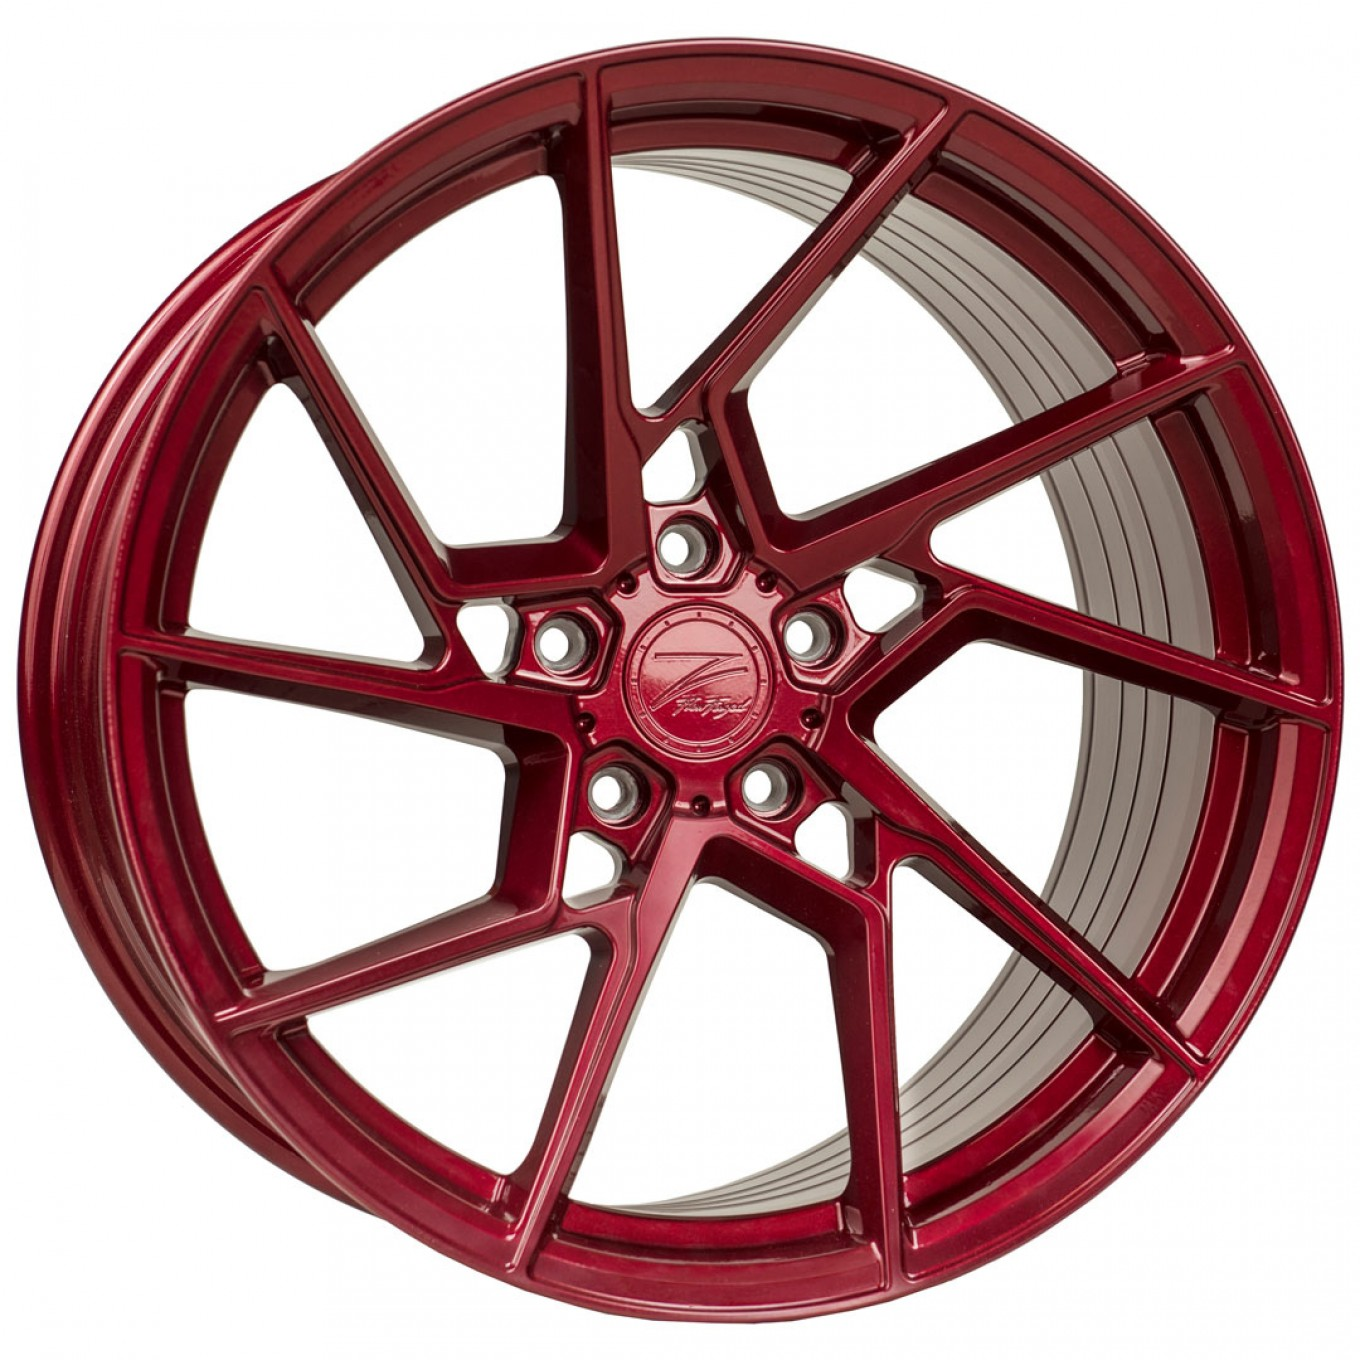 ZP3.1 Deep Concave FlowForged | Blood Red